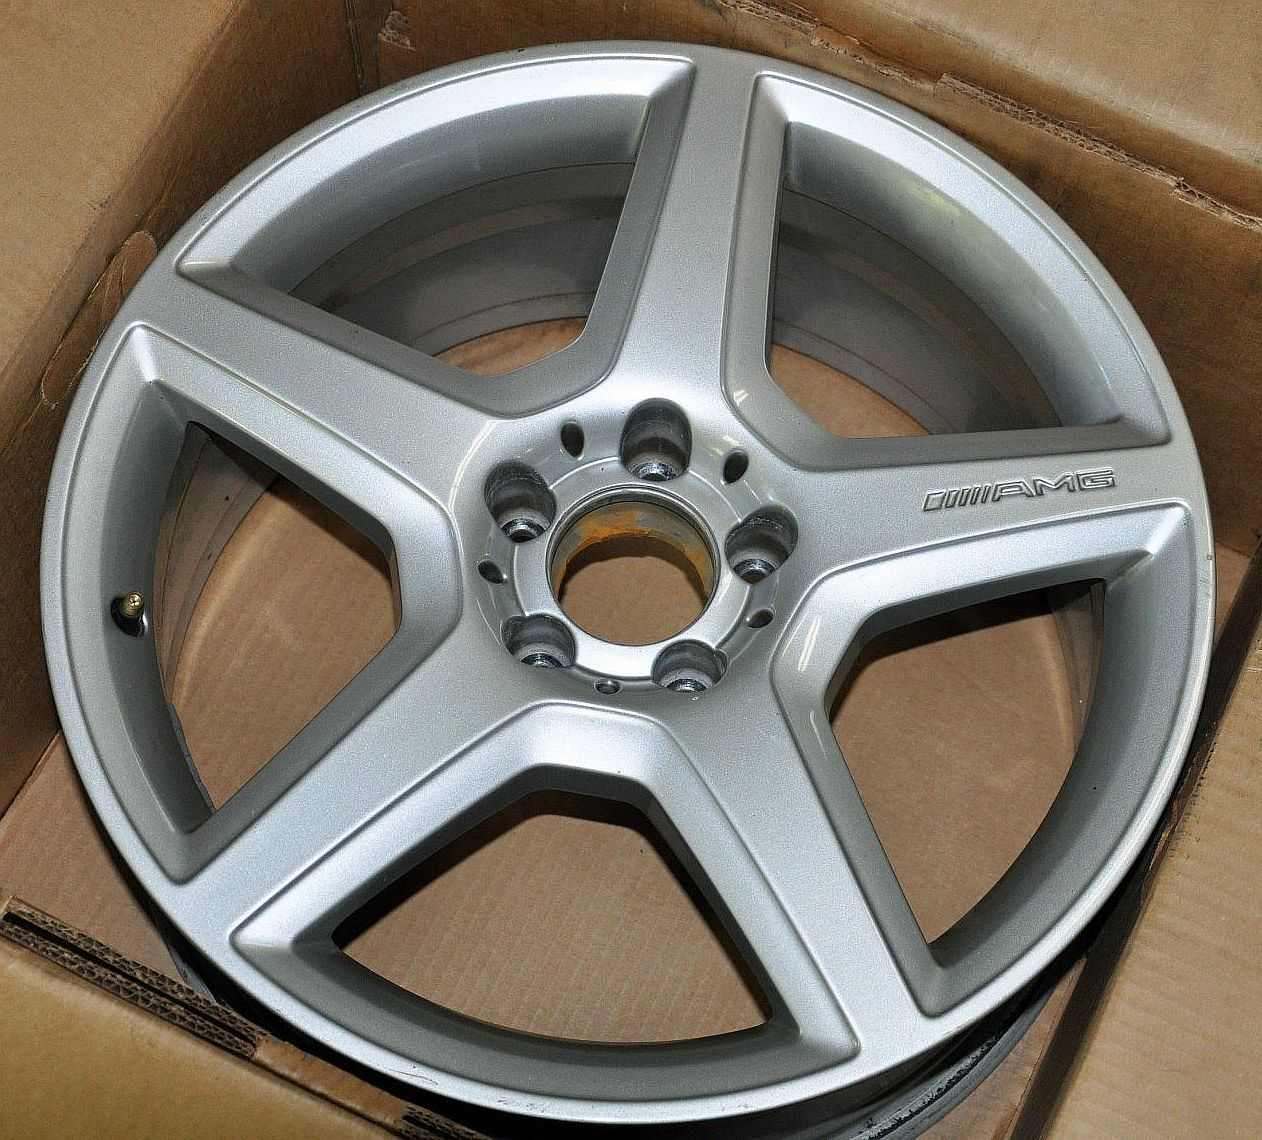 Amg Rims Pre Owned Mercedes 18 Inch Wheels For 2007 2009